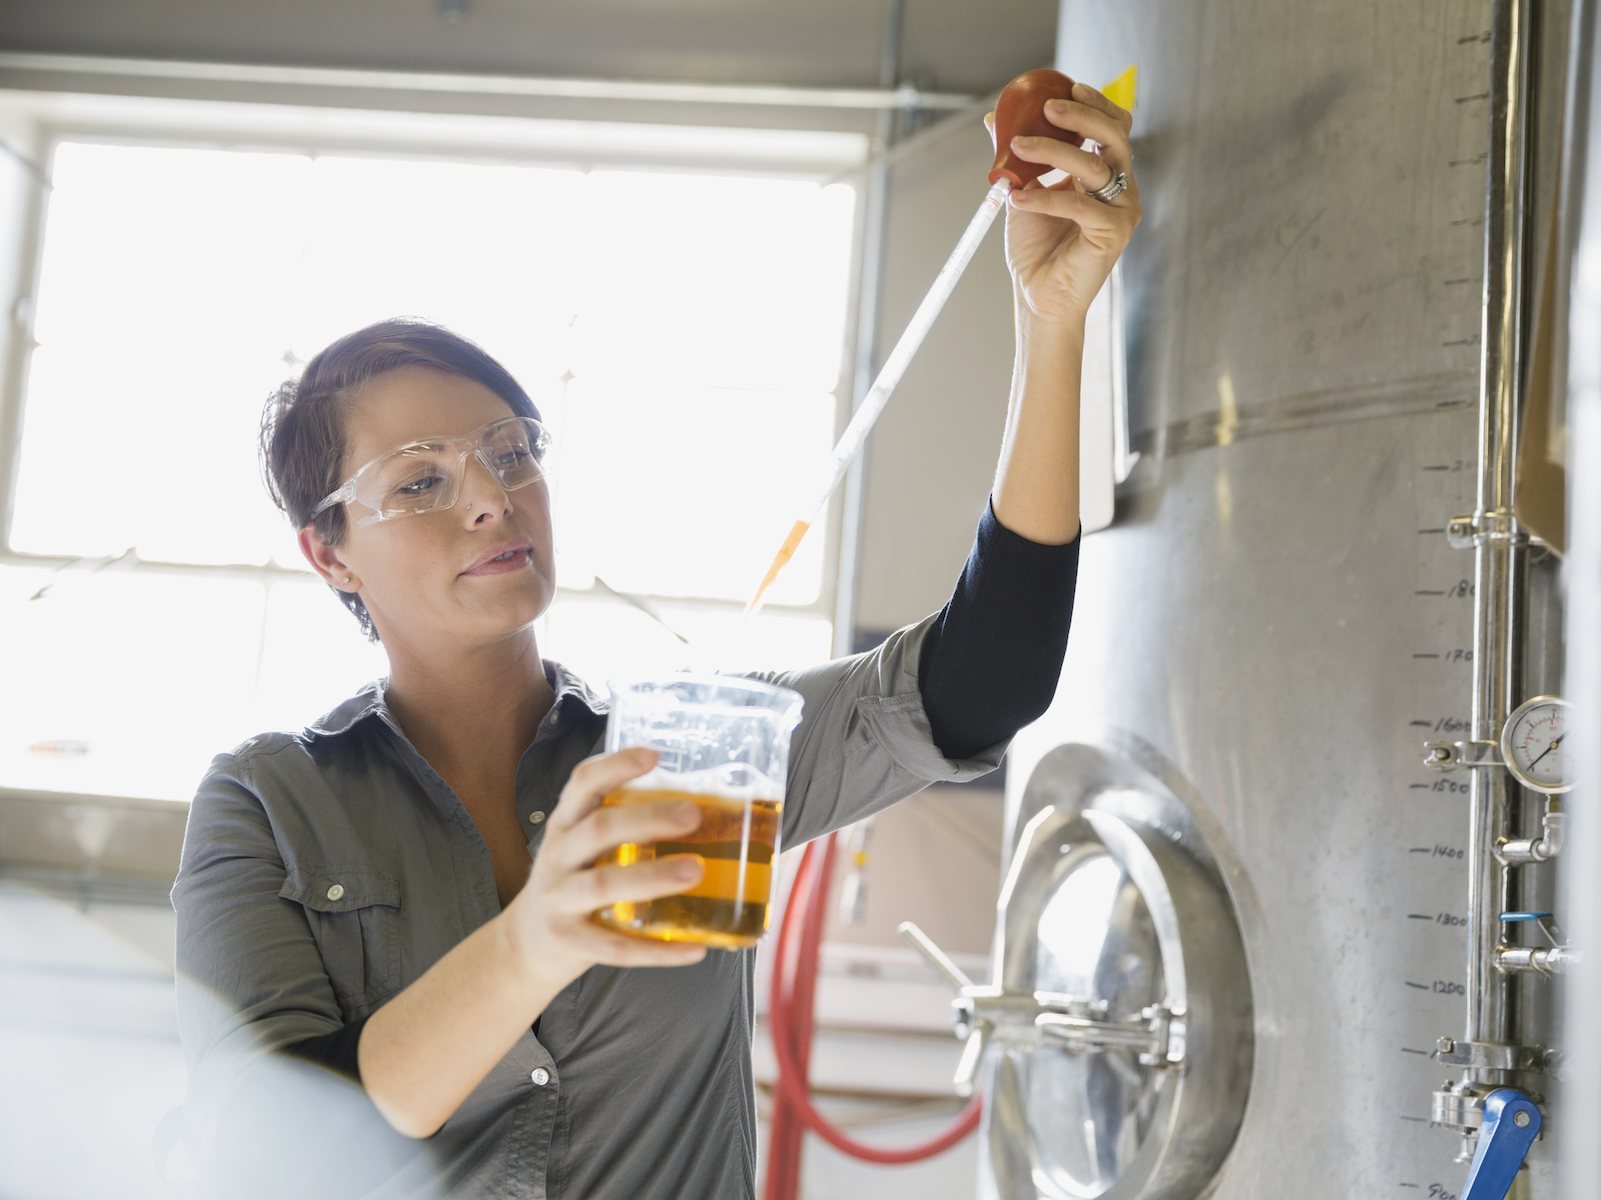 Craft Beer Is Perceived Worse If the Brewer Is a Woman, Study on Gender Bias Reveals